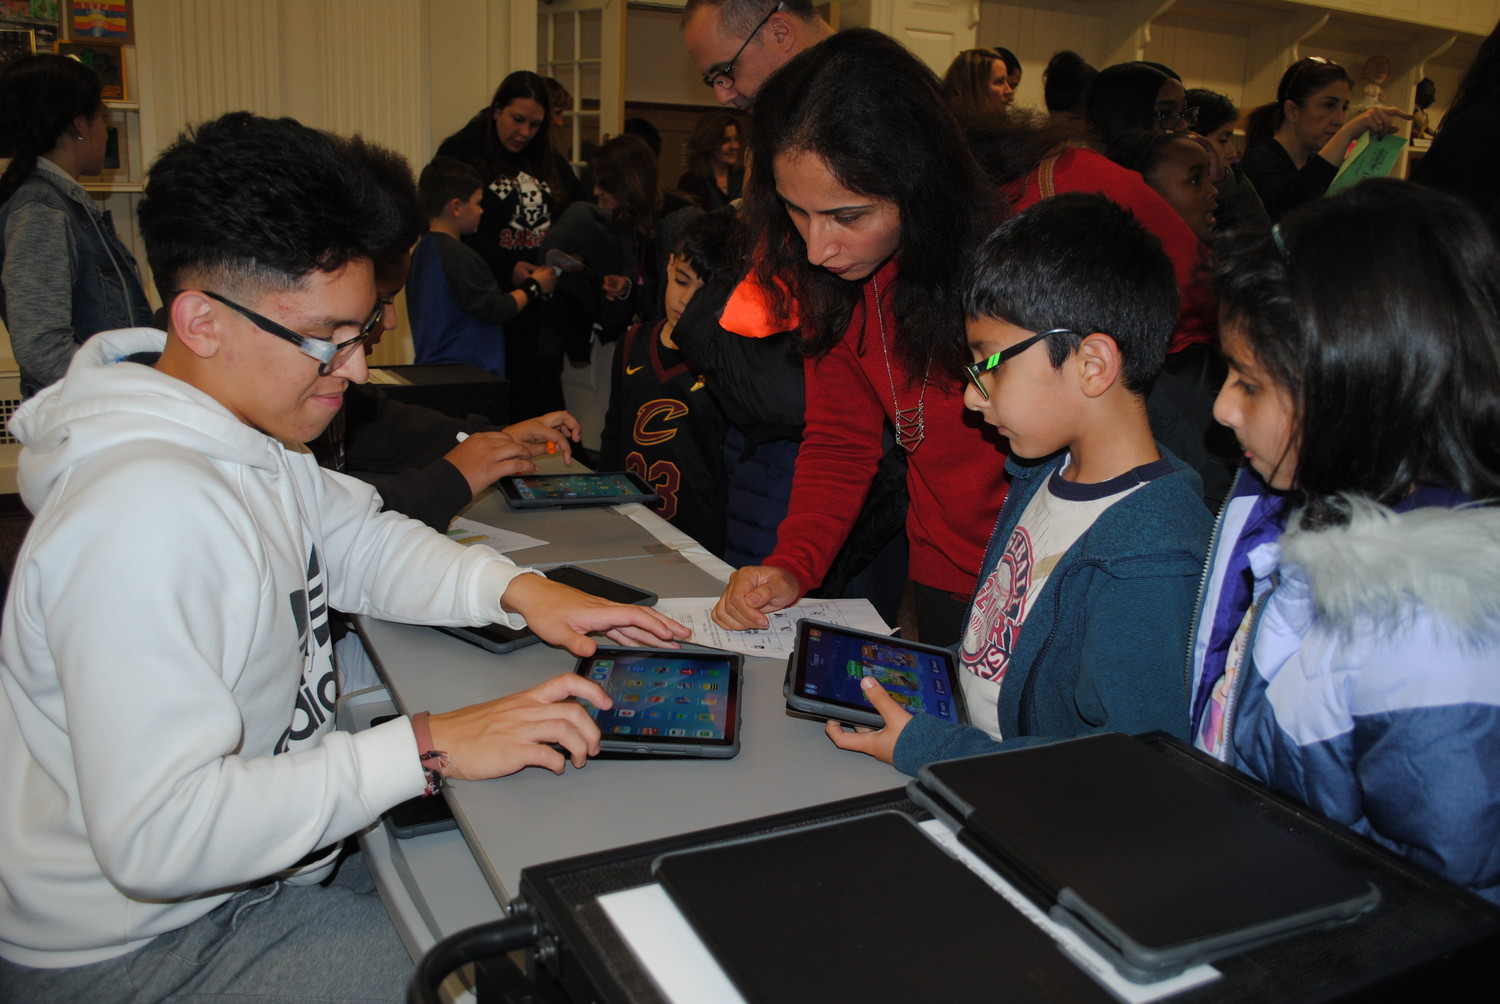 High school junior and Math Honor Society member Fernando Portillo showed Hina Asim and her children, Daniyal and Allena, how to start coding on an iPad.